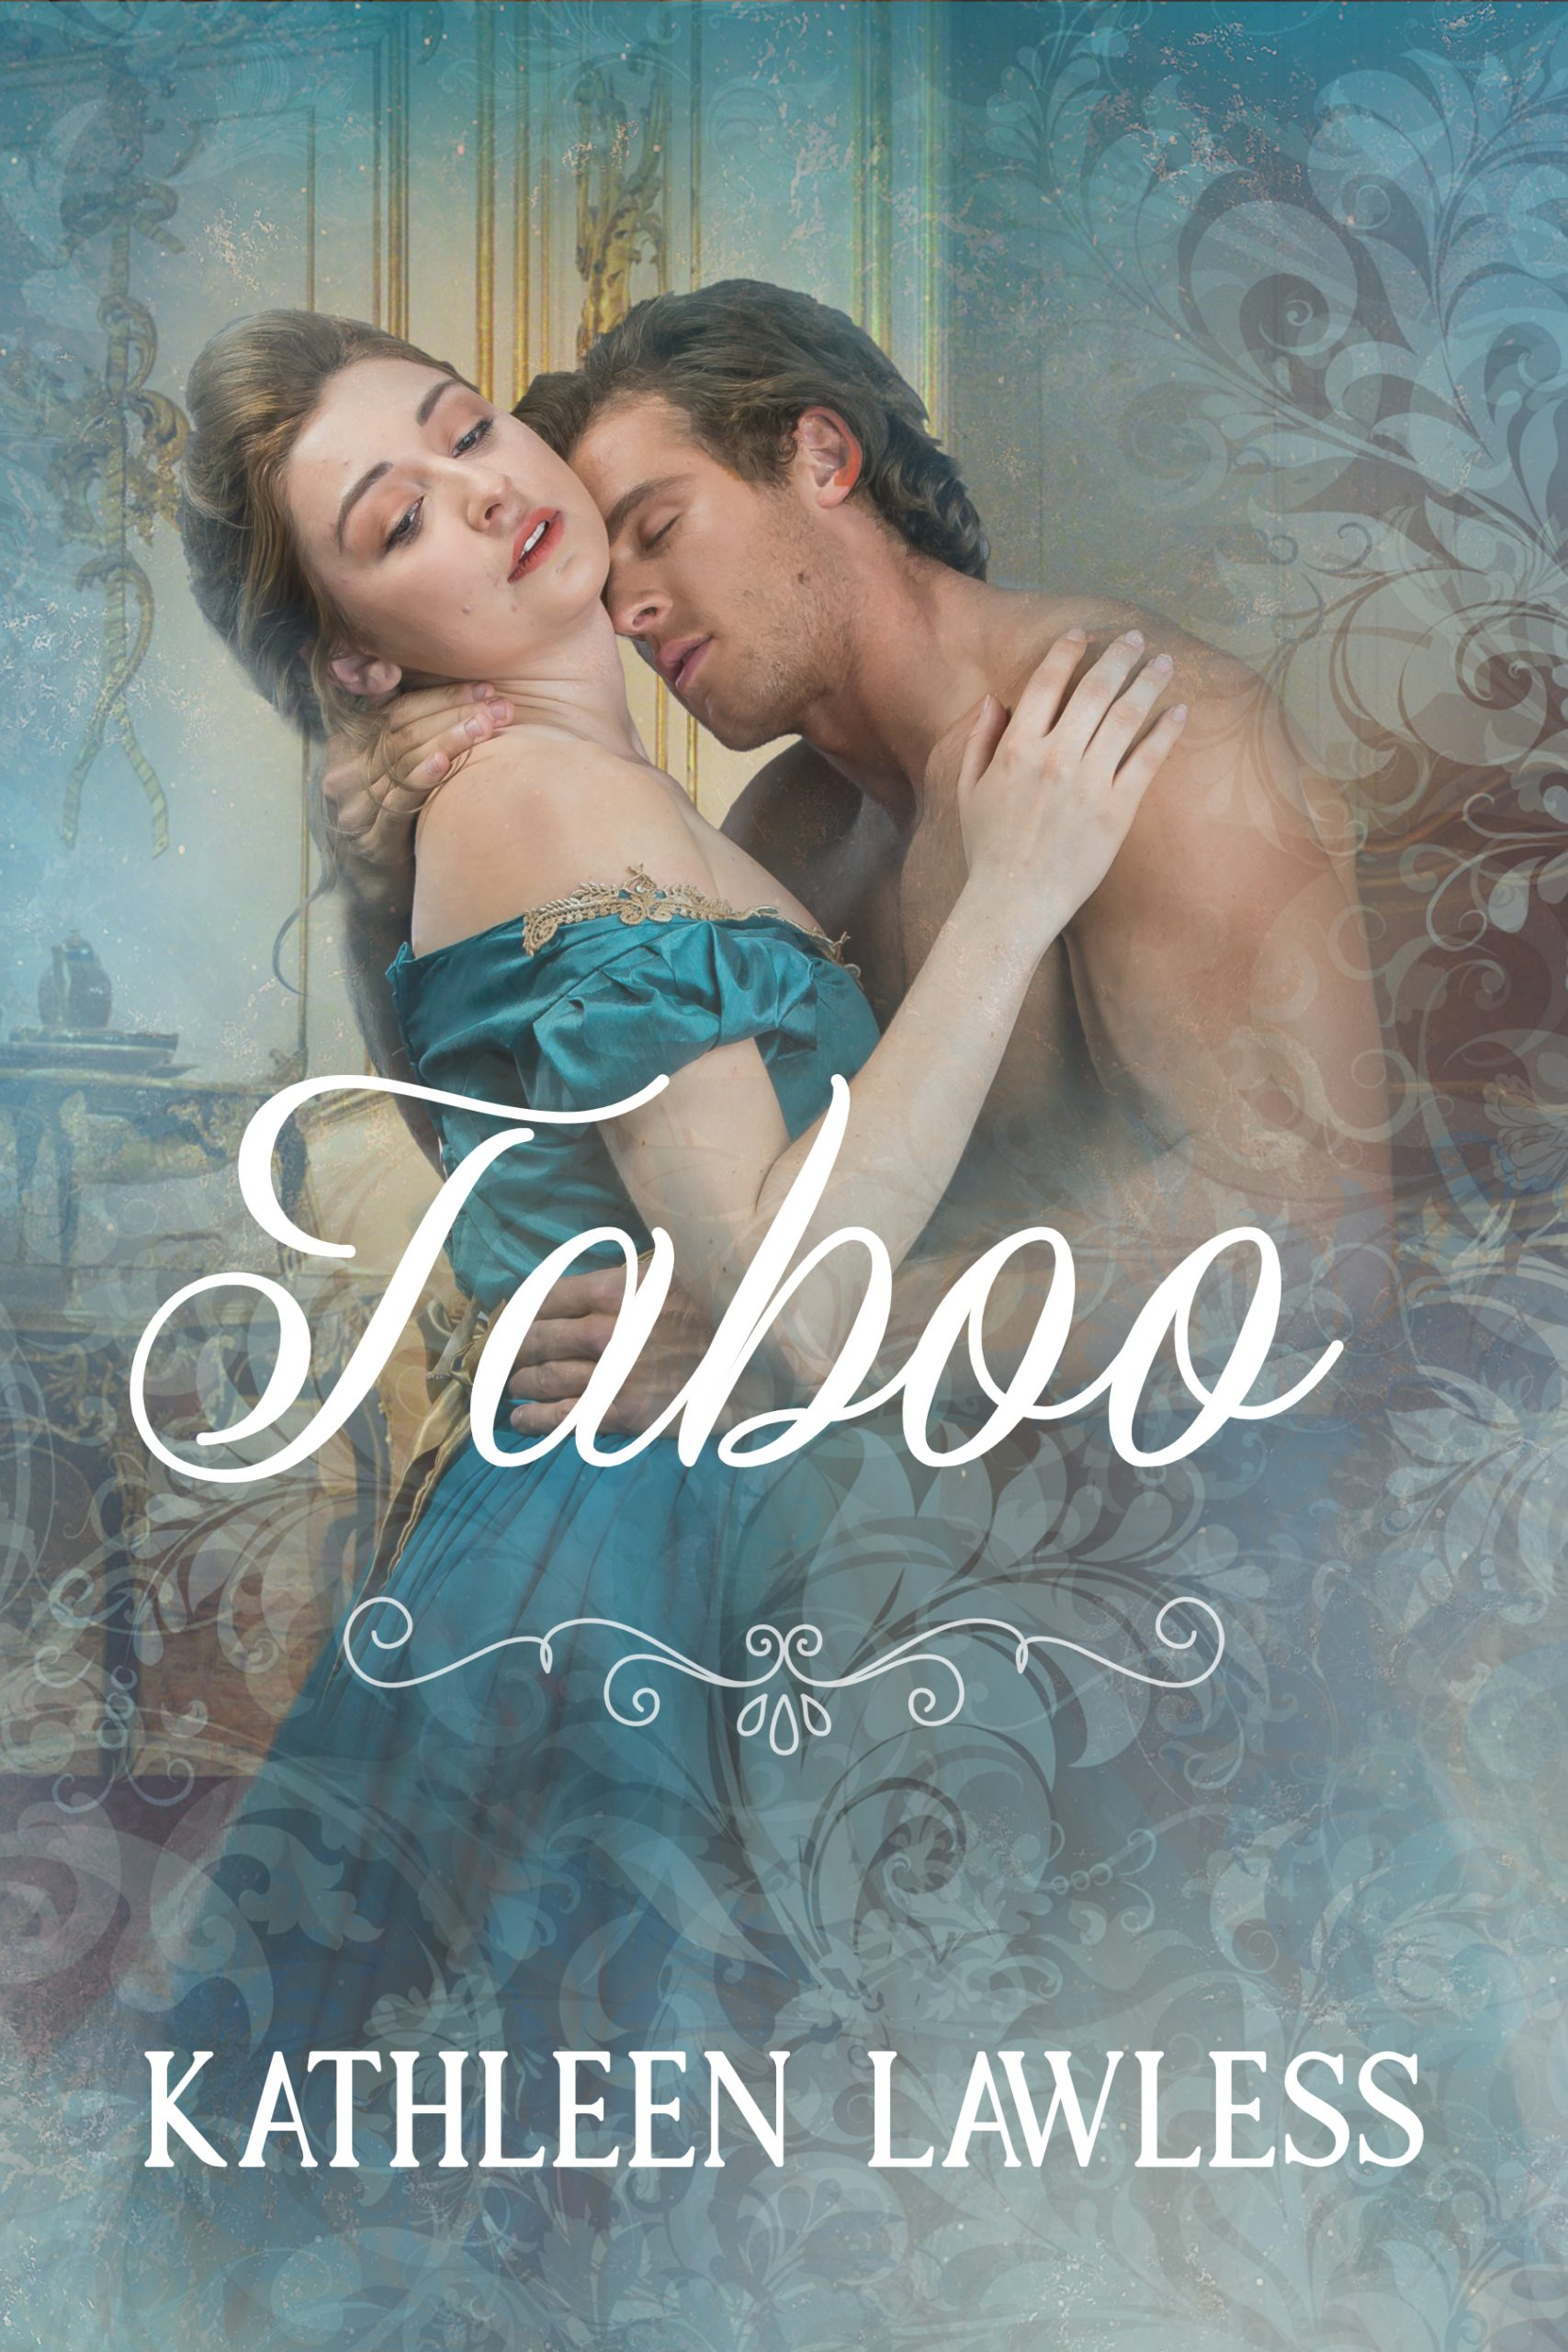 cover of Taboo for Kathleen Lawless, late 19th century couple in passionate embrace